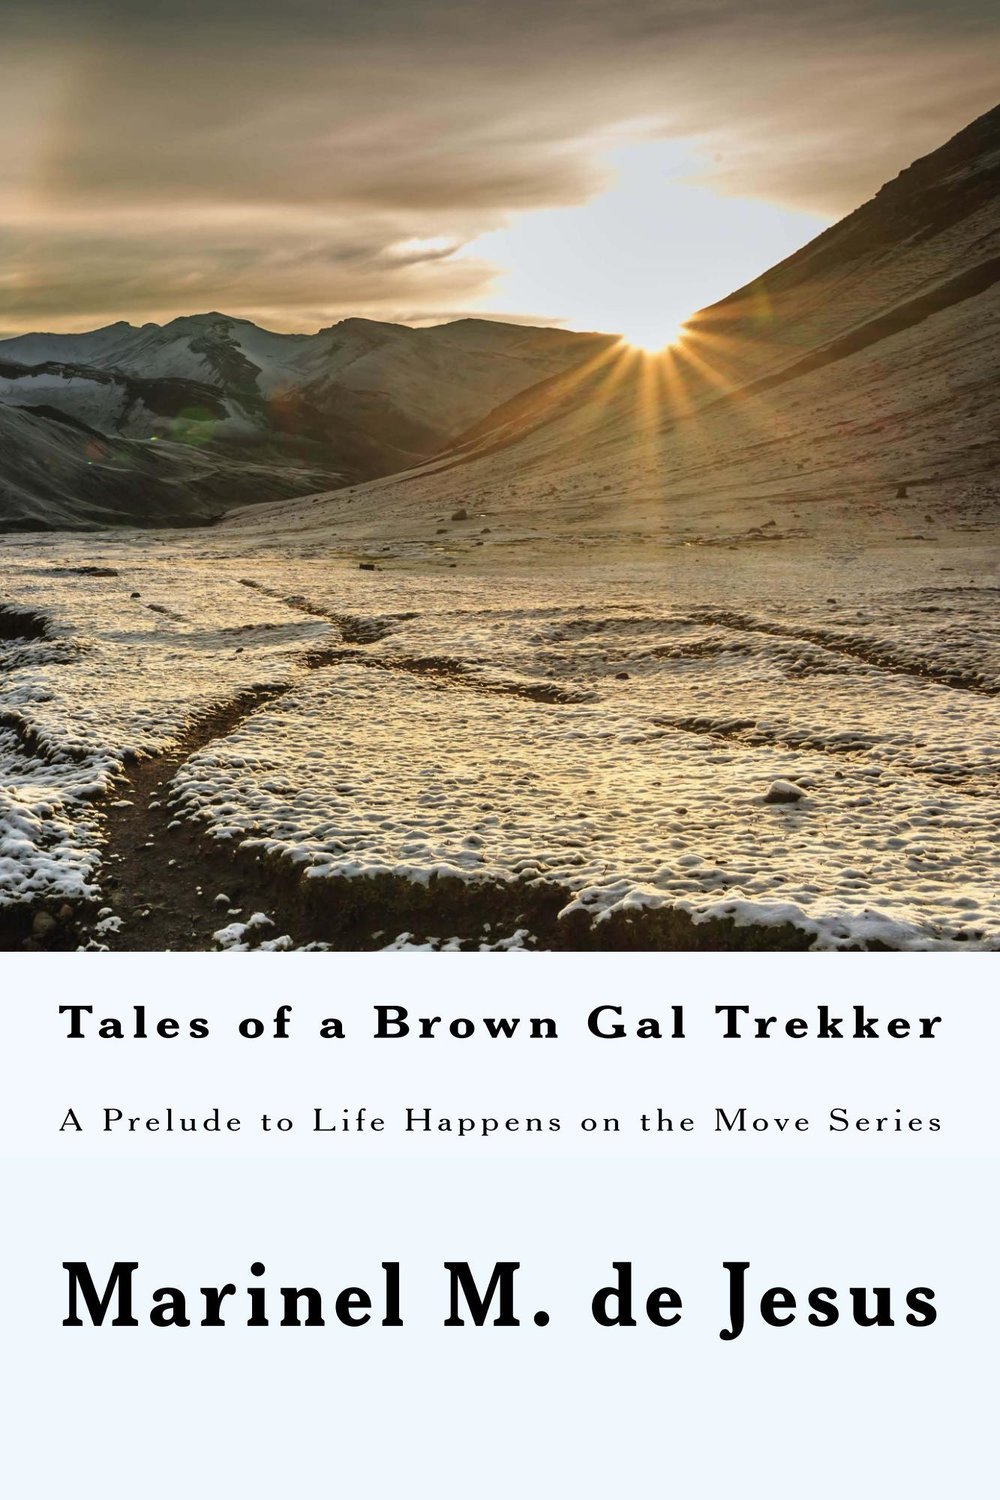 Tales of a Brown Gal Trekker is a collection of travel essays and poetry as a reflection on Marinel's journey as a global mountain trekker over the past 15 years.   - This is a prelude to her upcoming Life Happens on the Move book series which tackles the role of fear in our lives and how in Brown Gal Trekker's world she made a conscious decision to overcome each and every fear that holds her back.  As a practicing attorney, quitting her stable legal career to become a nomad has been the most challenging decision for her to make.  How does one overcome the fear of taking that leap of faith?  What inspires someone to make such a radical shift in her life?  This introduction to her book series gives readers a glimpse of Brown Gal's psyche and unconventional approach to life.  The book further showcases photos in full color of places and mountains that inspired Brown Gal Trekker along the way.  Tales of a Brown Gal Trekker is available in Kindle and paperback versions.  Proceeds from the book will go towards the women empowerment projects via Peak Explorations.